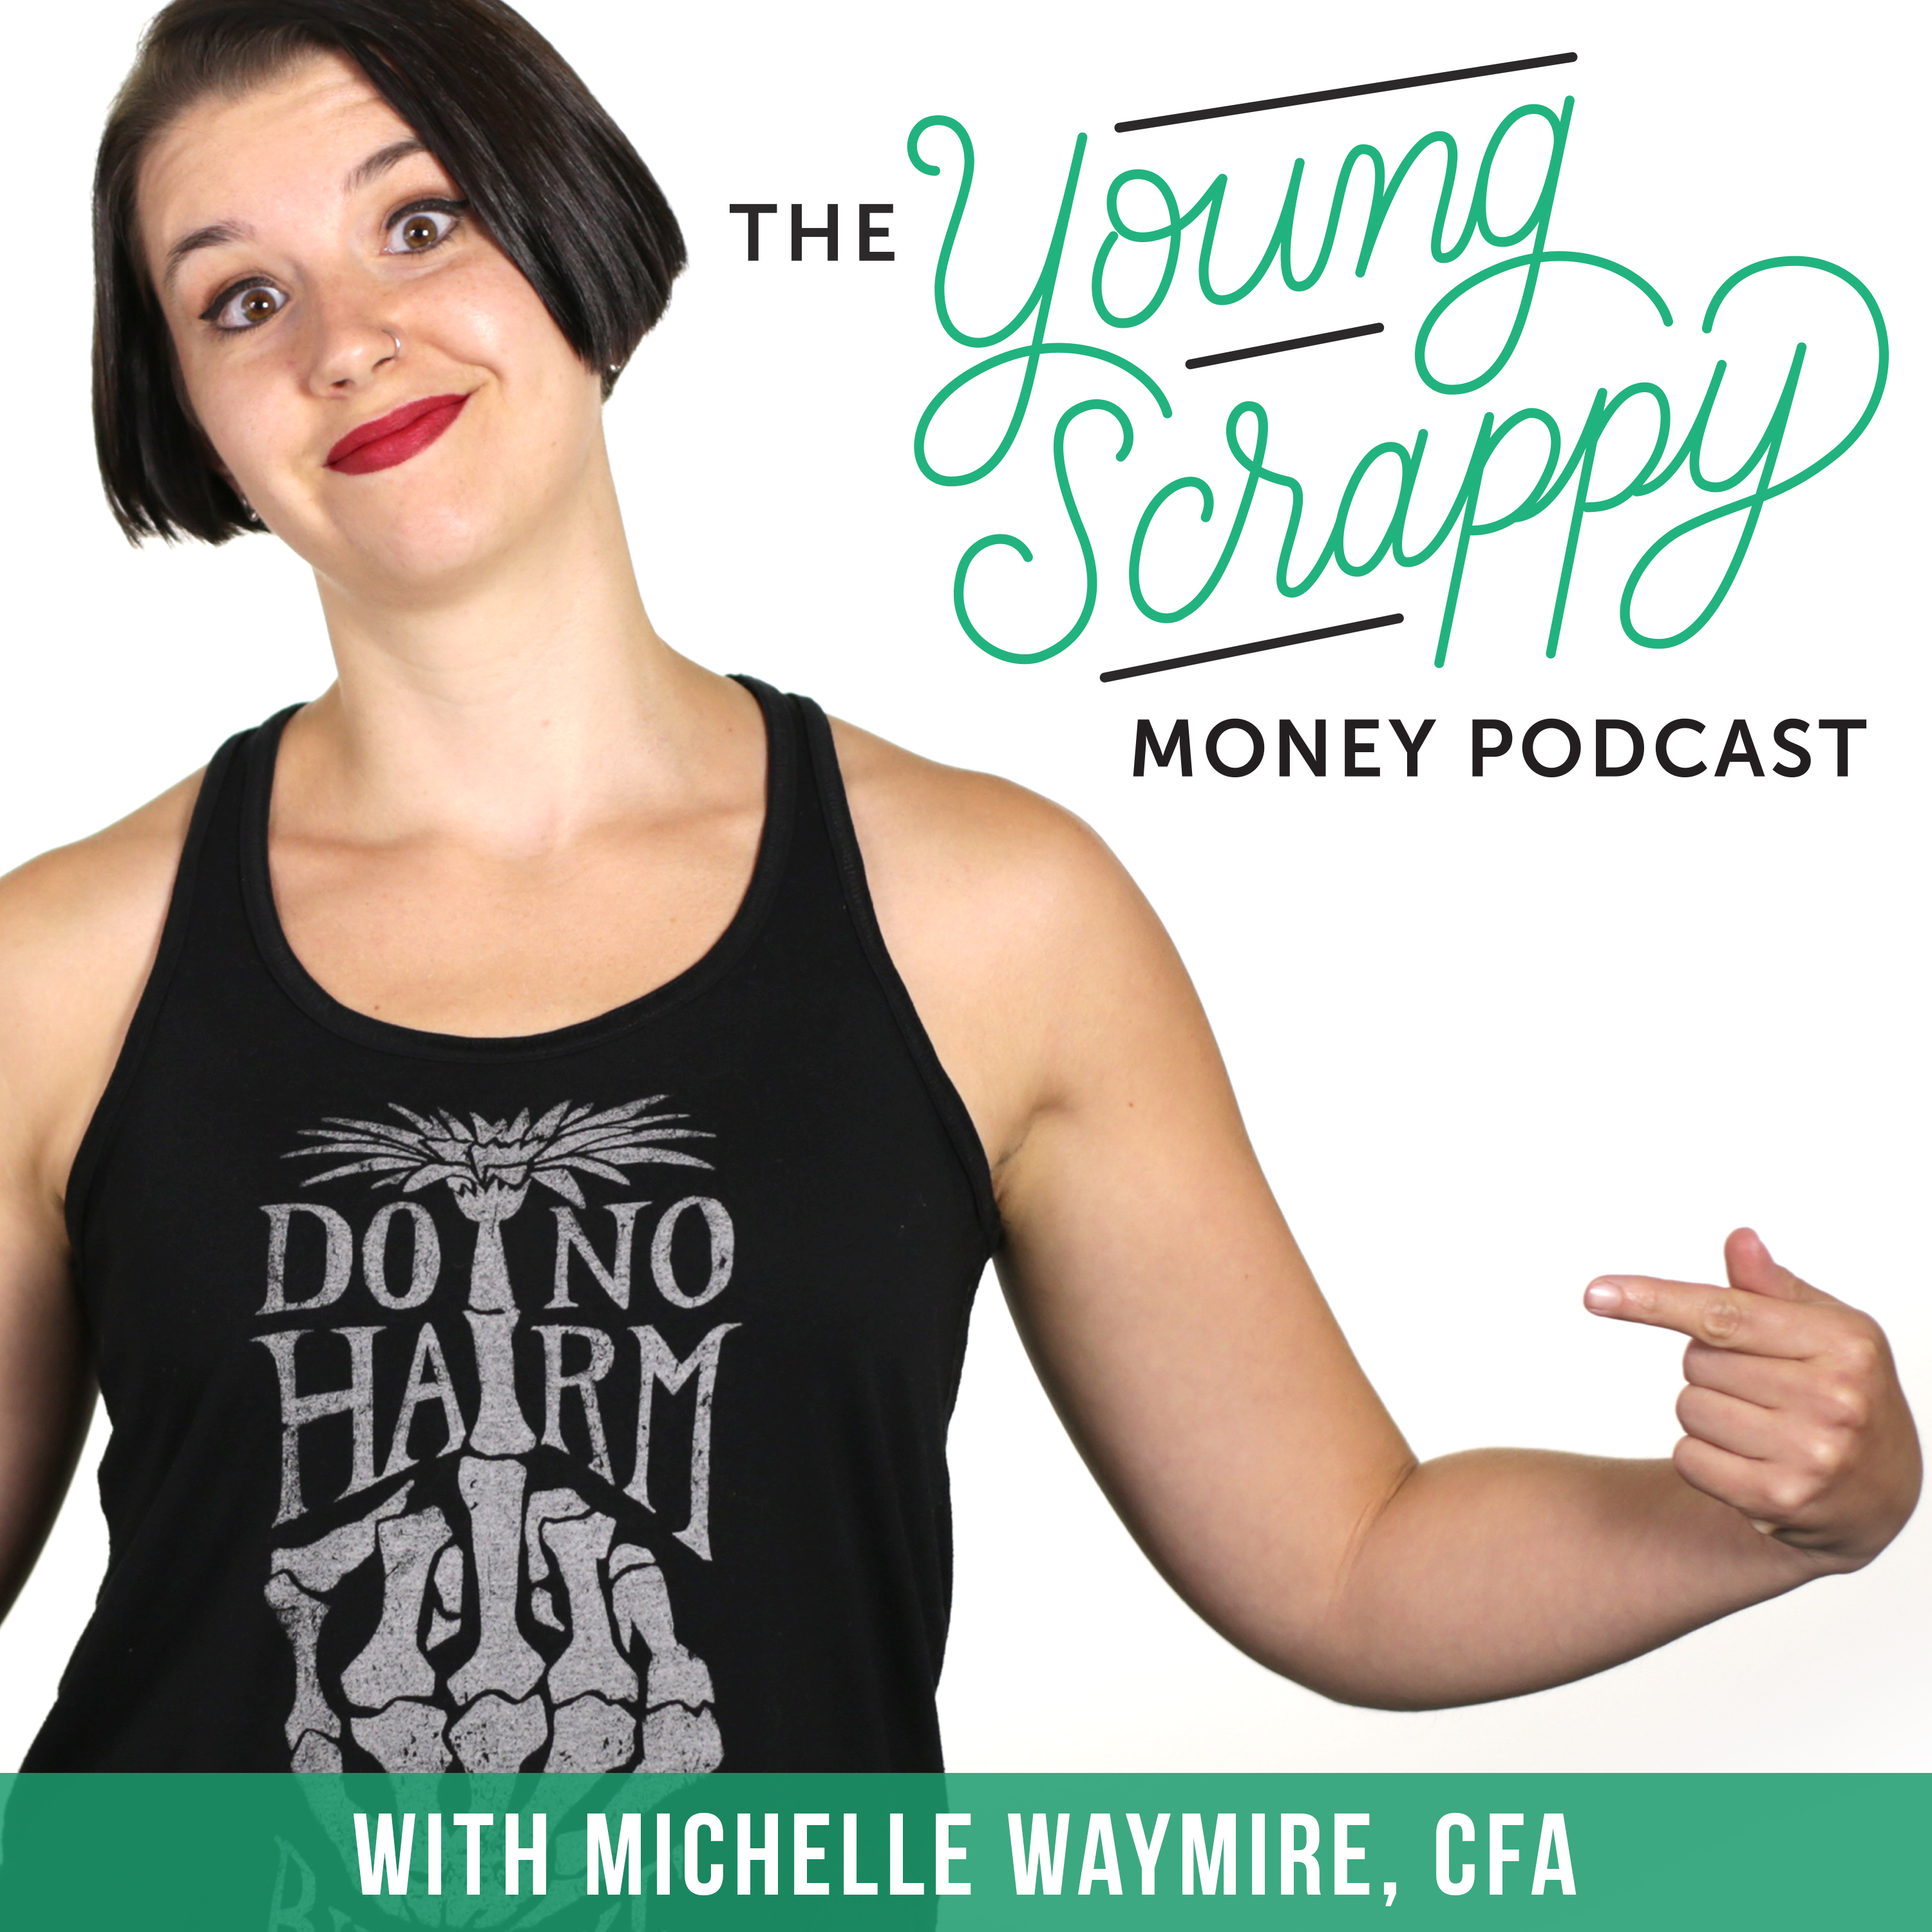 The Young Scrappy Money Podcast show art